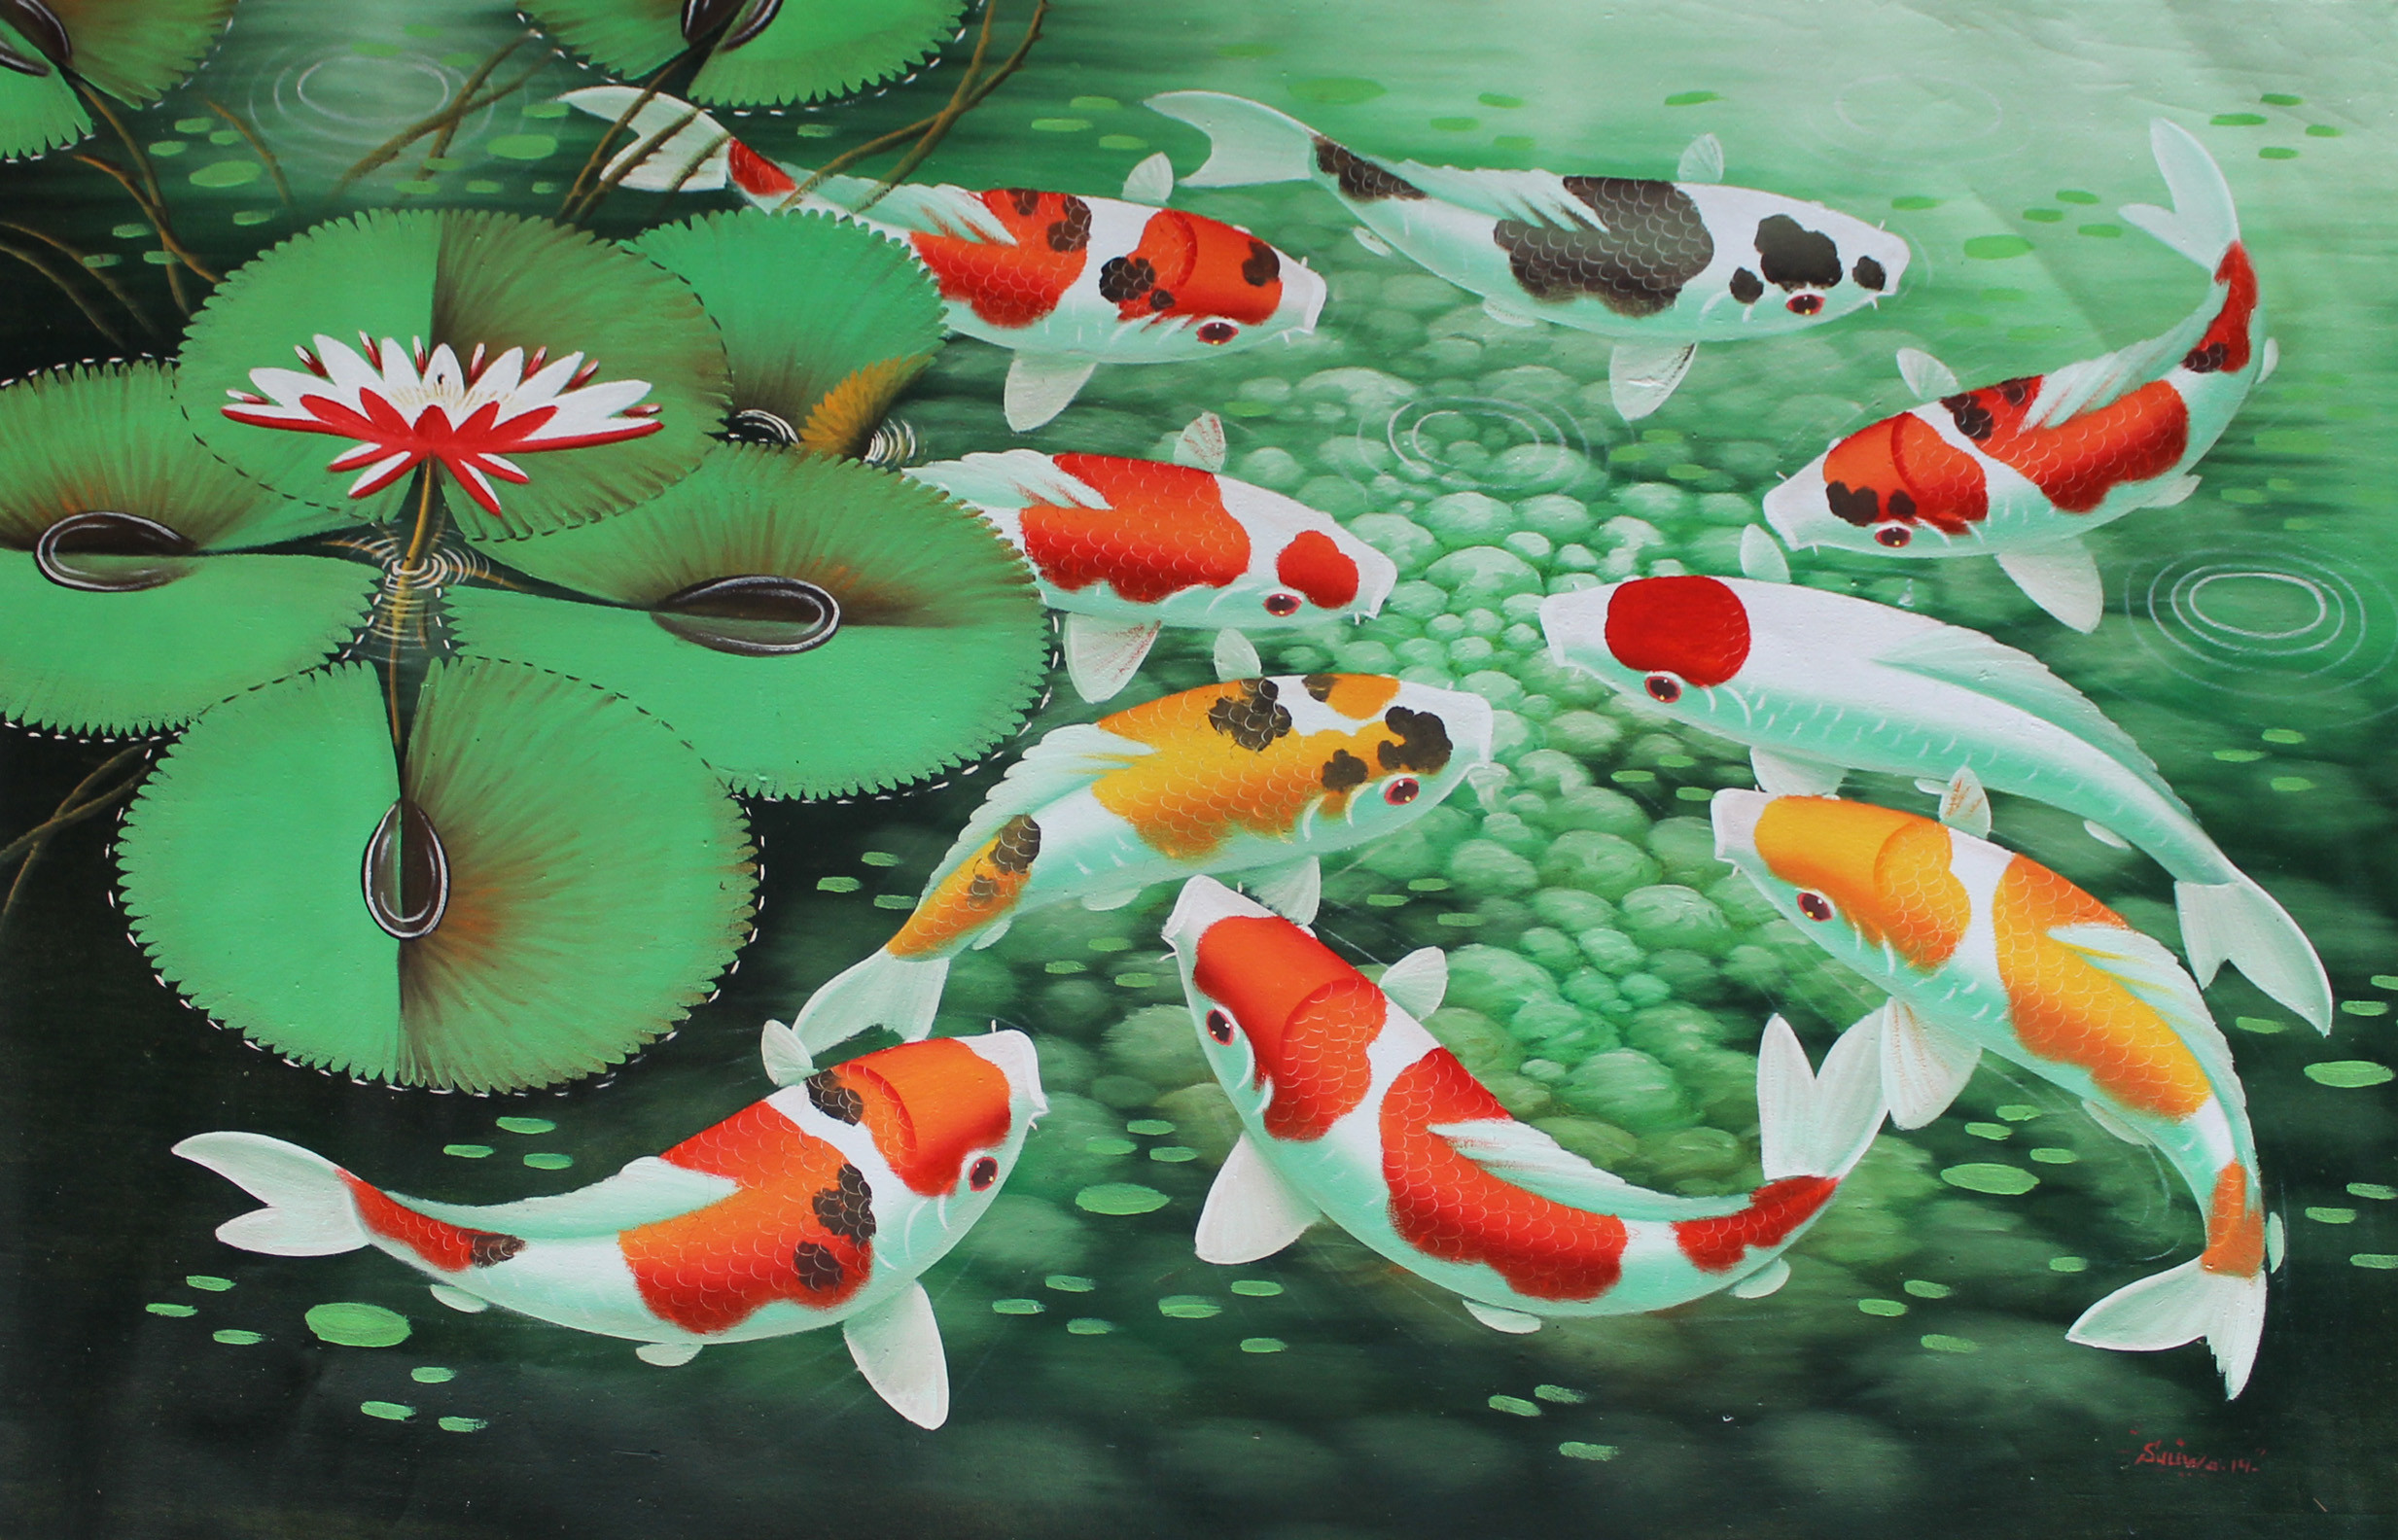 2466x1584 Koi Fish Painting - wallpaper.